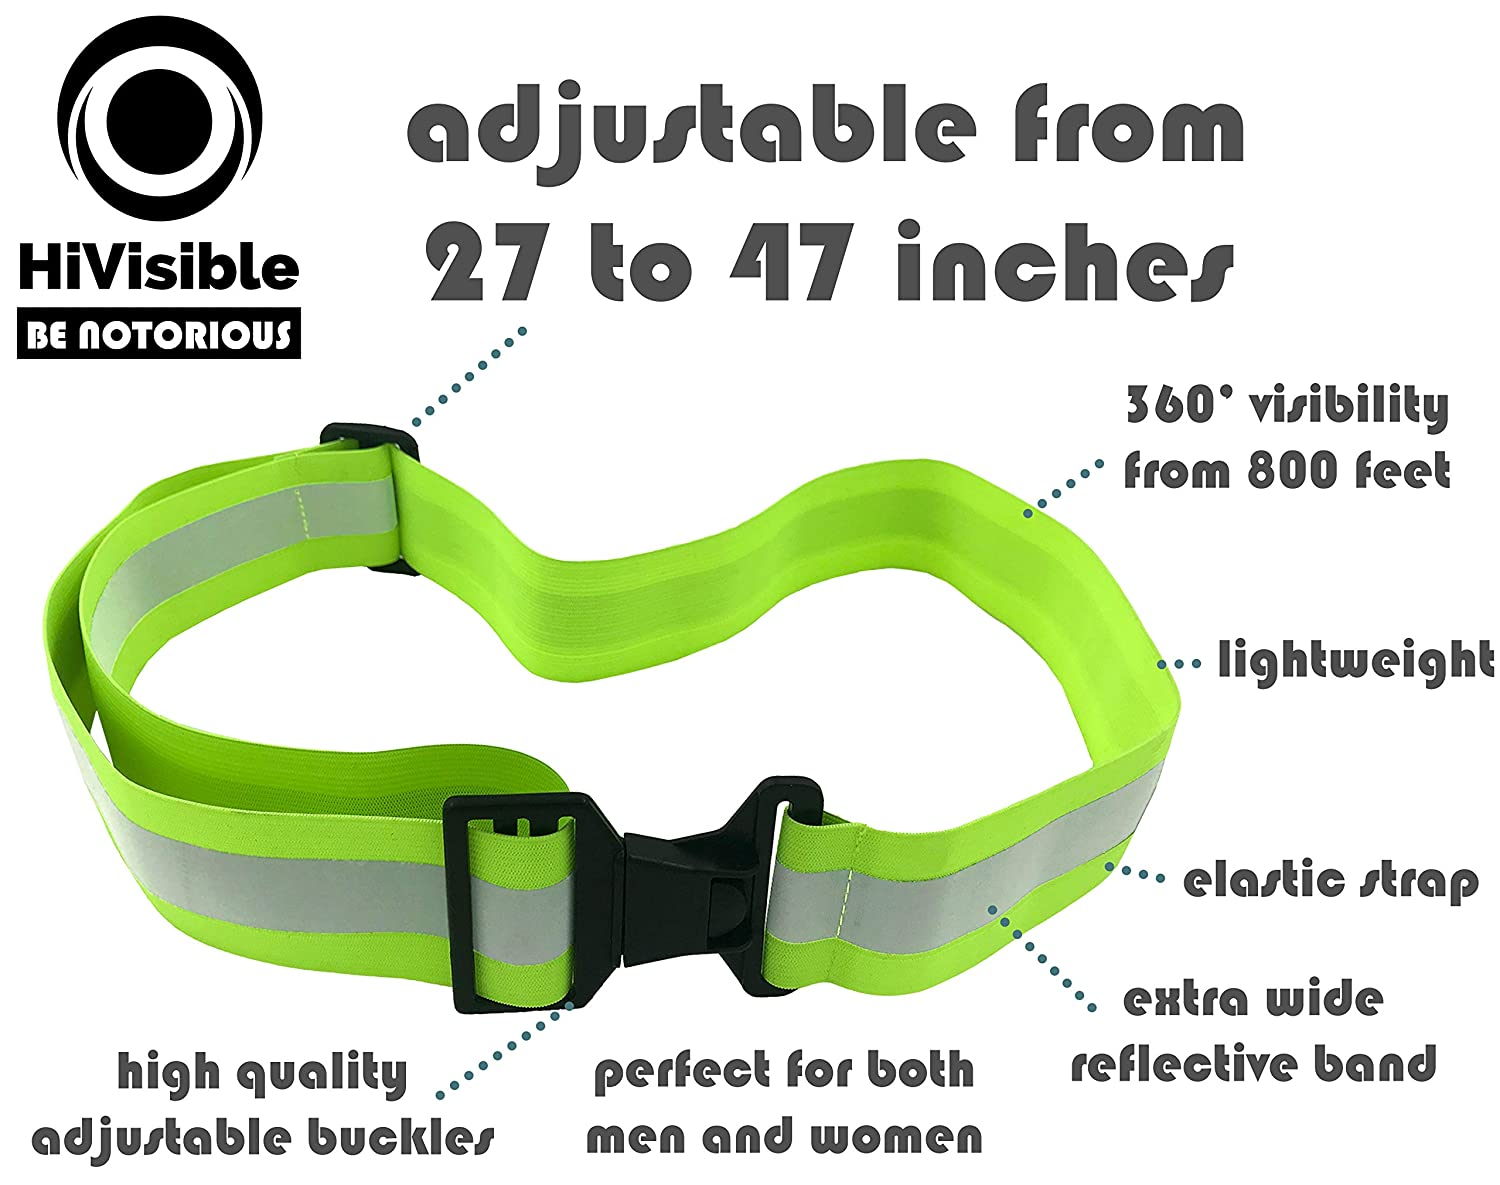 Army PT Belt Military Safety Reflector Strips HiVisible Reflective Running Gear for Men and Women for Night Running Cycling Walking High Visibility Reflective Belt